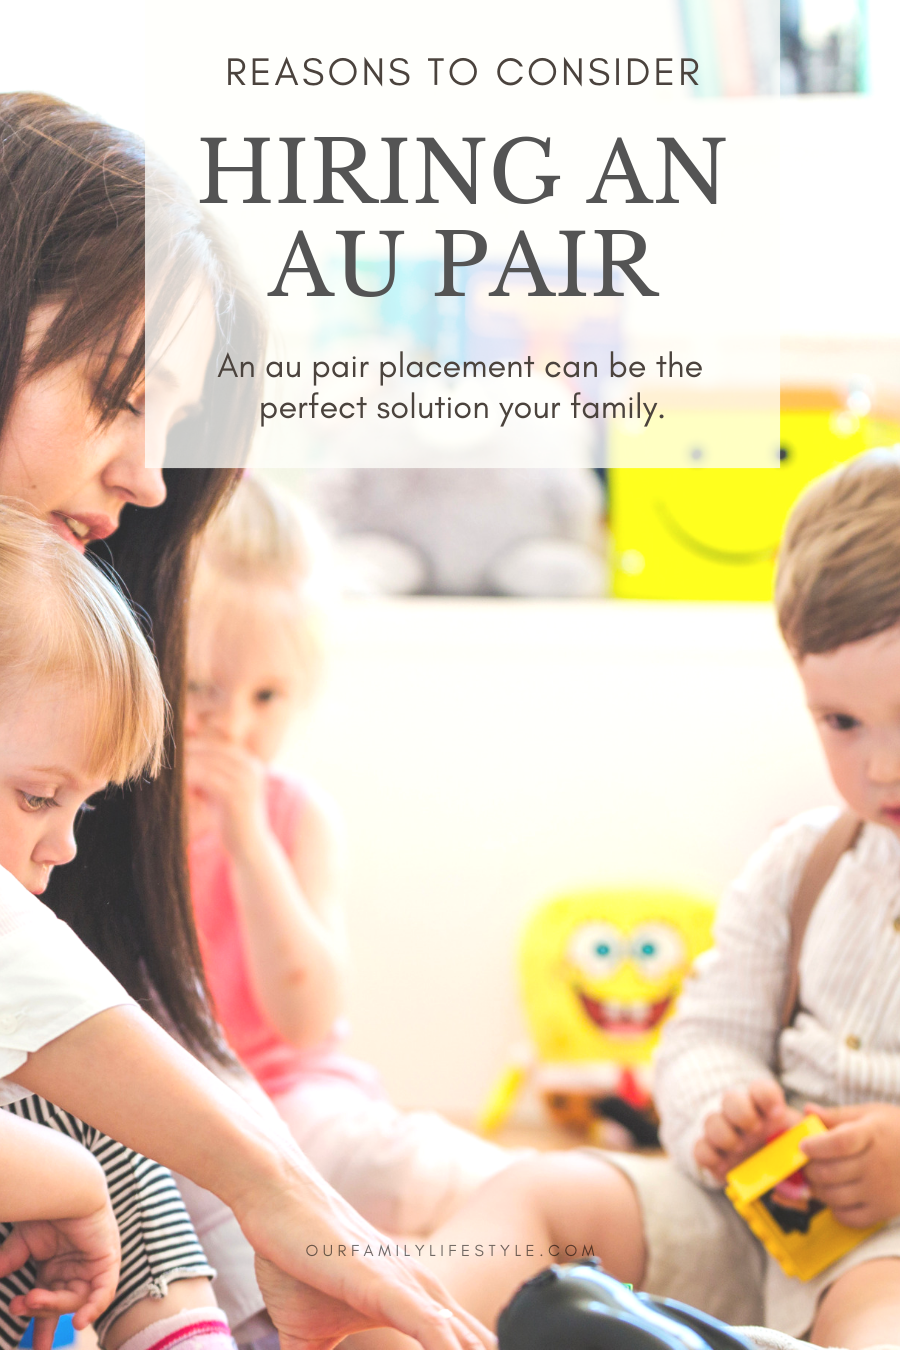 Reasons to Consider Hiring An Au Pair